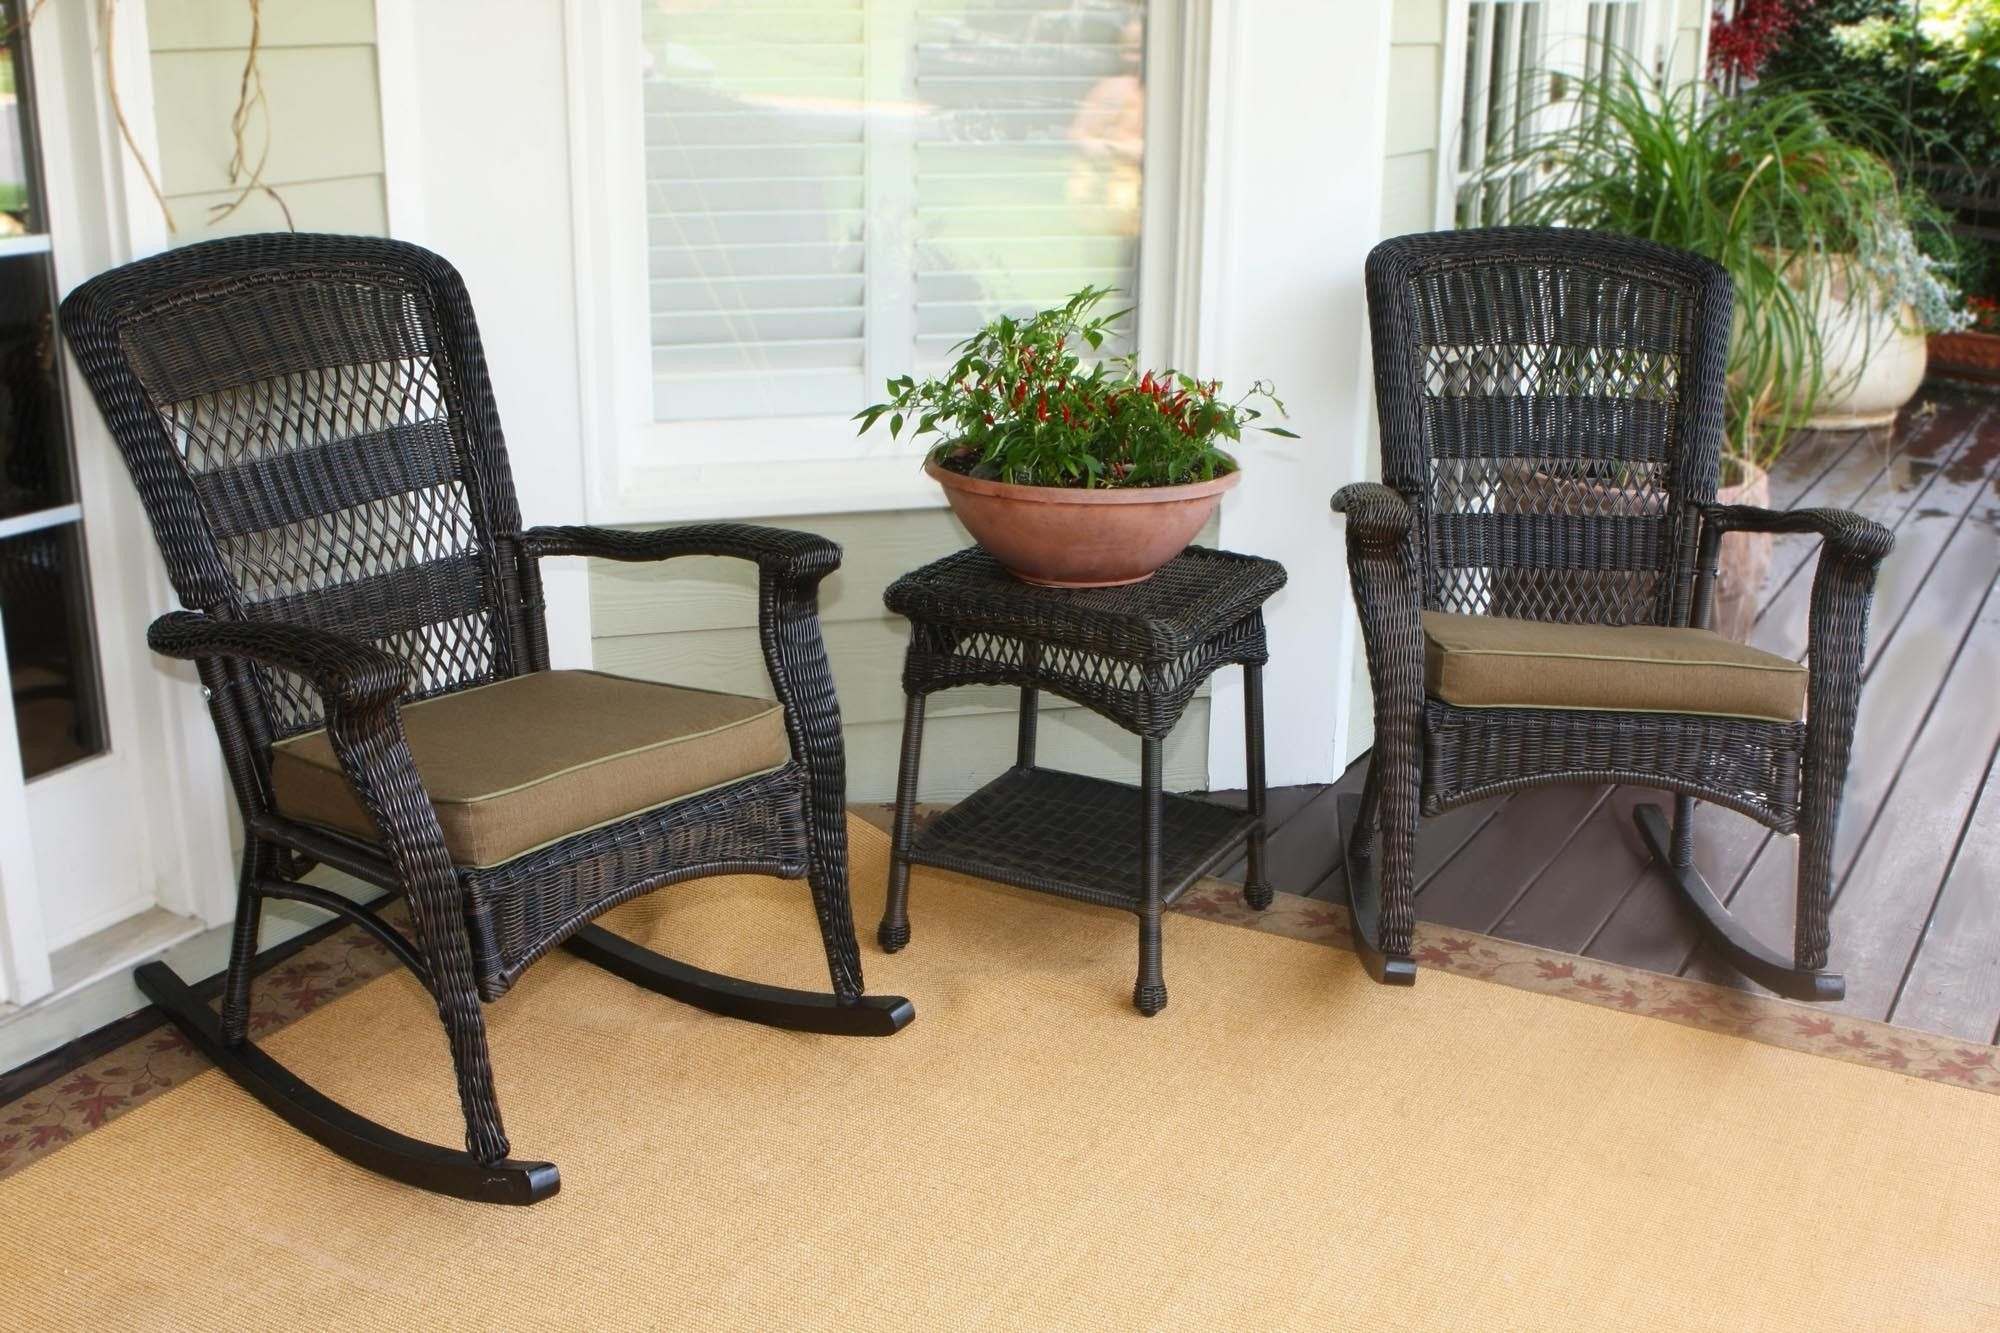 Most Recent Fancy Wicker Outdoor Chair Design Inspiration : Remarkable Dark Intended For Outdoor Rocking Chairs With Table (View 7 of 20)